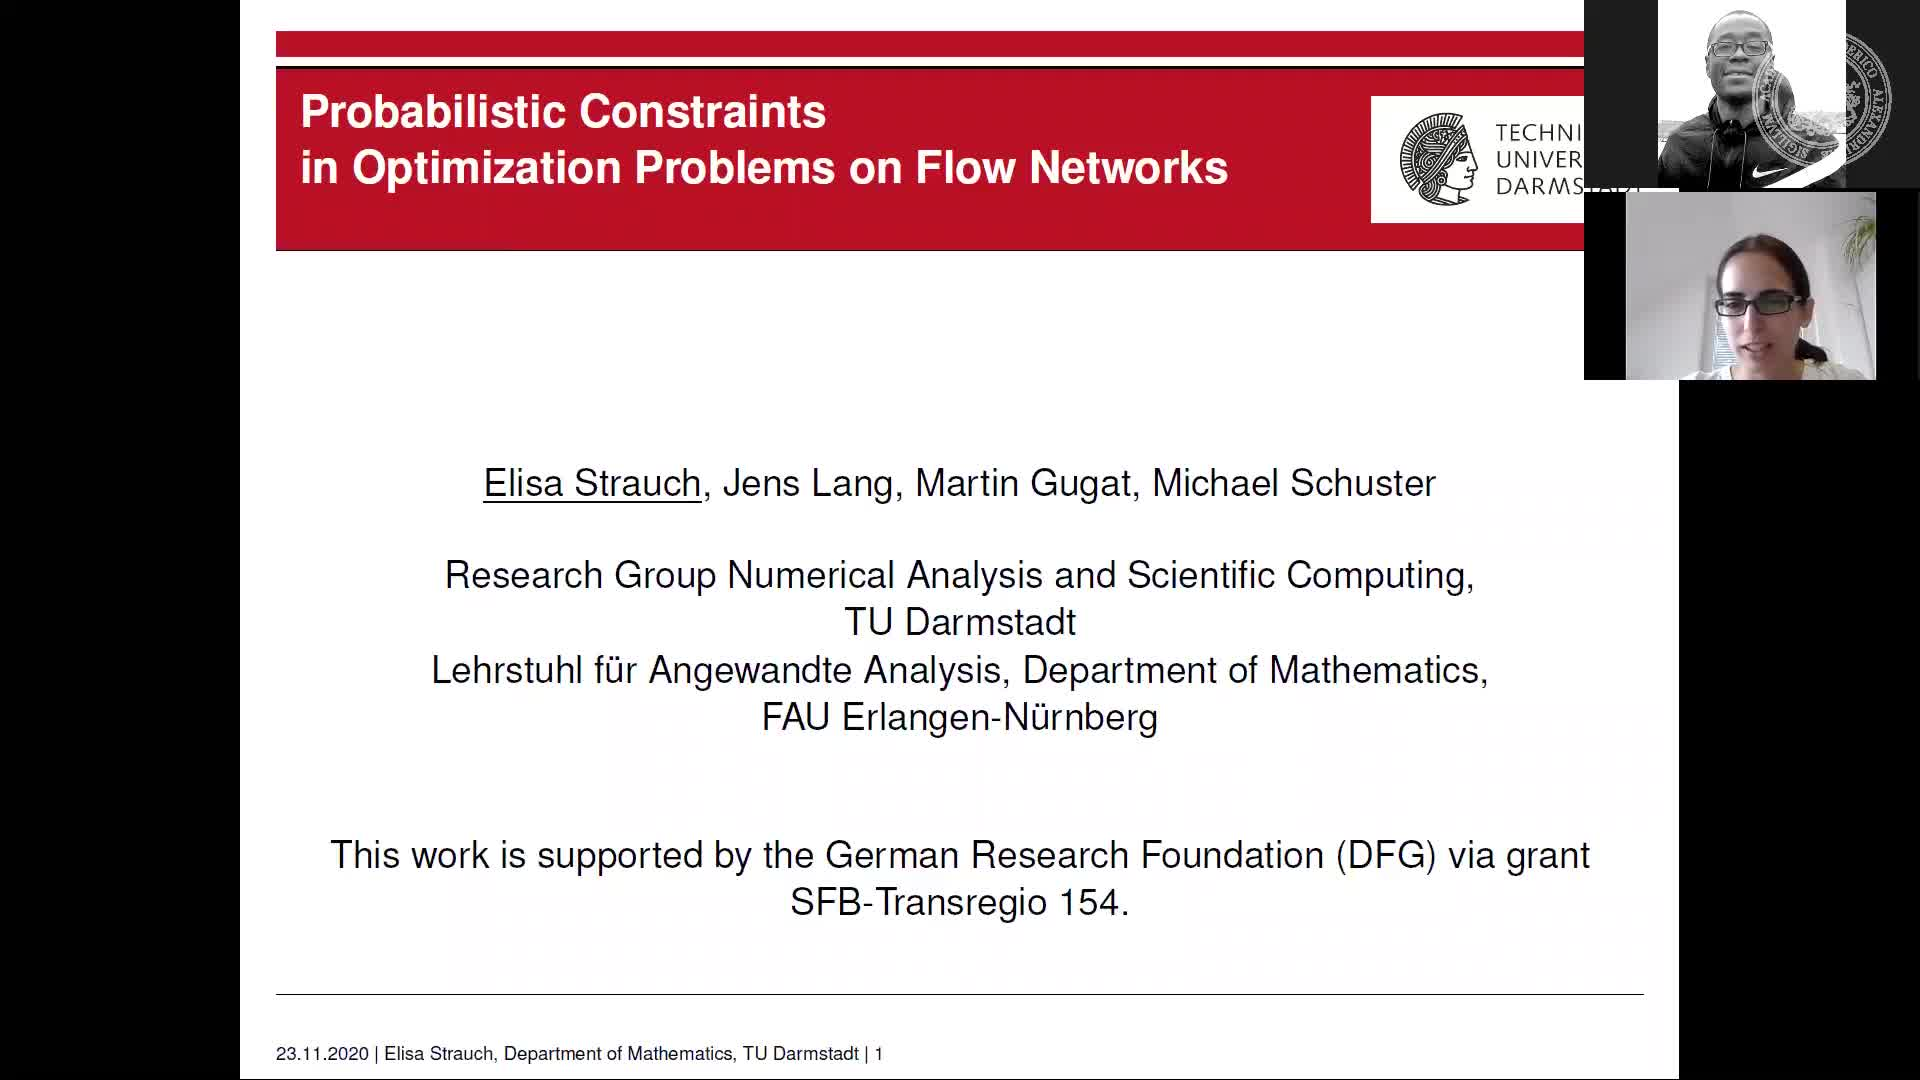 Probabilistic Constraints in Optimization Problems on Flow Networks (Elisa Strauch, TU Damstadt) preview image